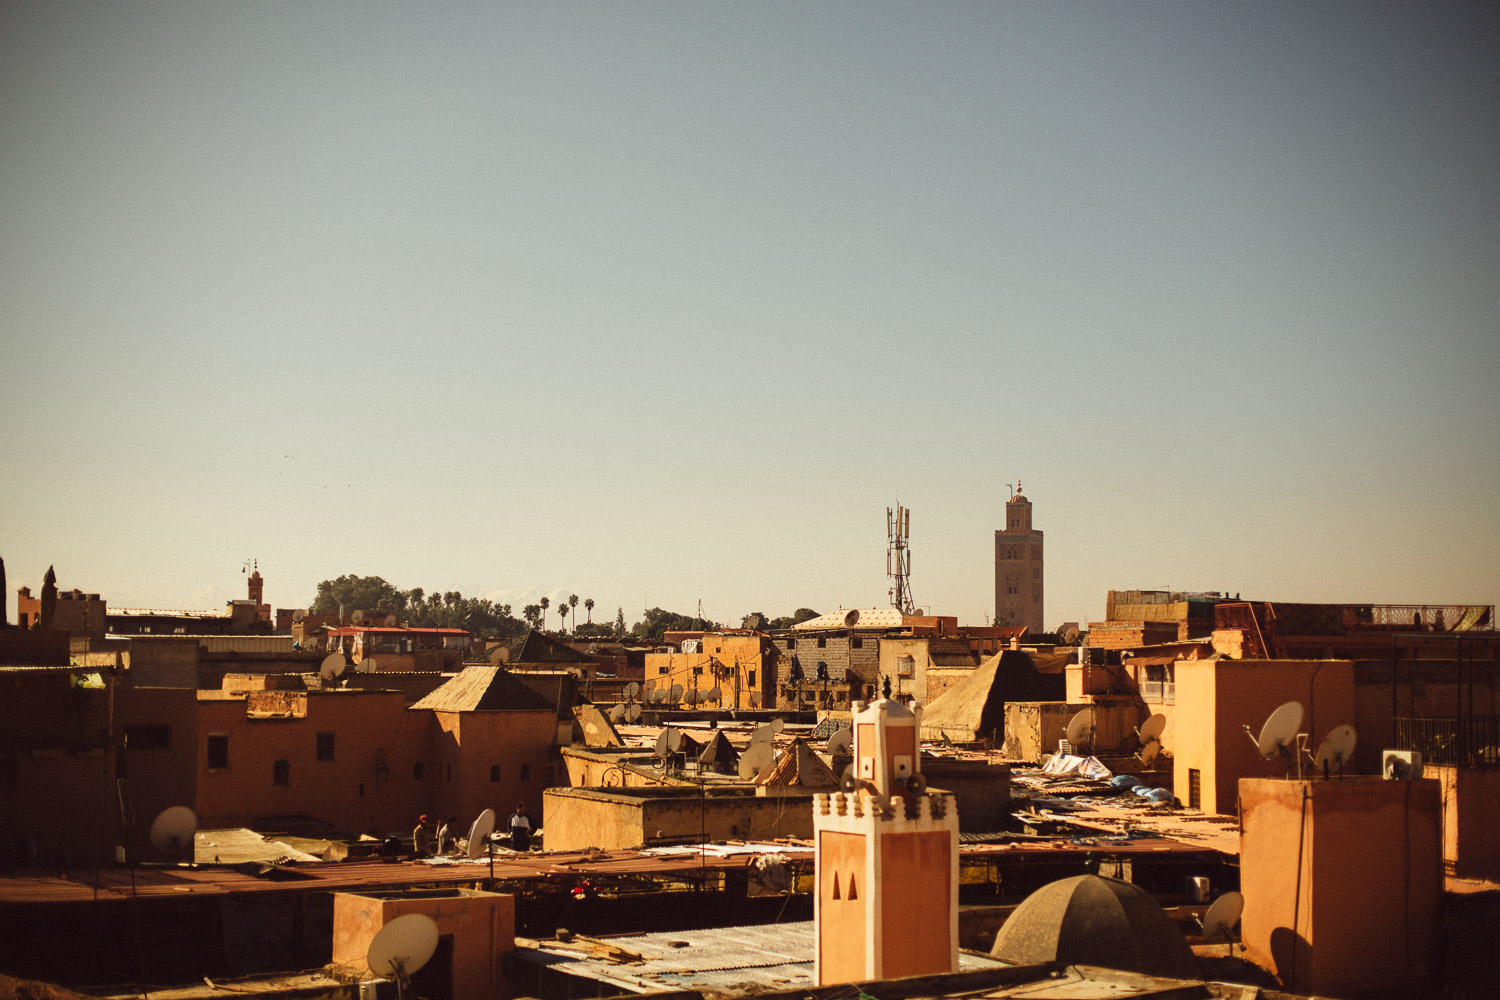 City of Marrakech, Morocco. Taken from a rooftop near the Spice Market, looking towards theKoutoubia Mosque and theJamaa el Fna night-market.